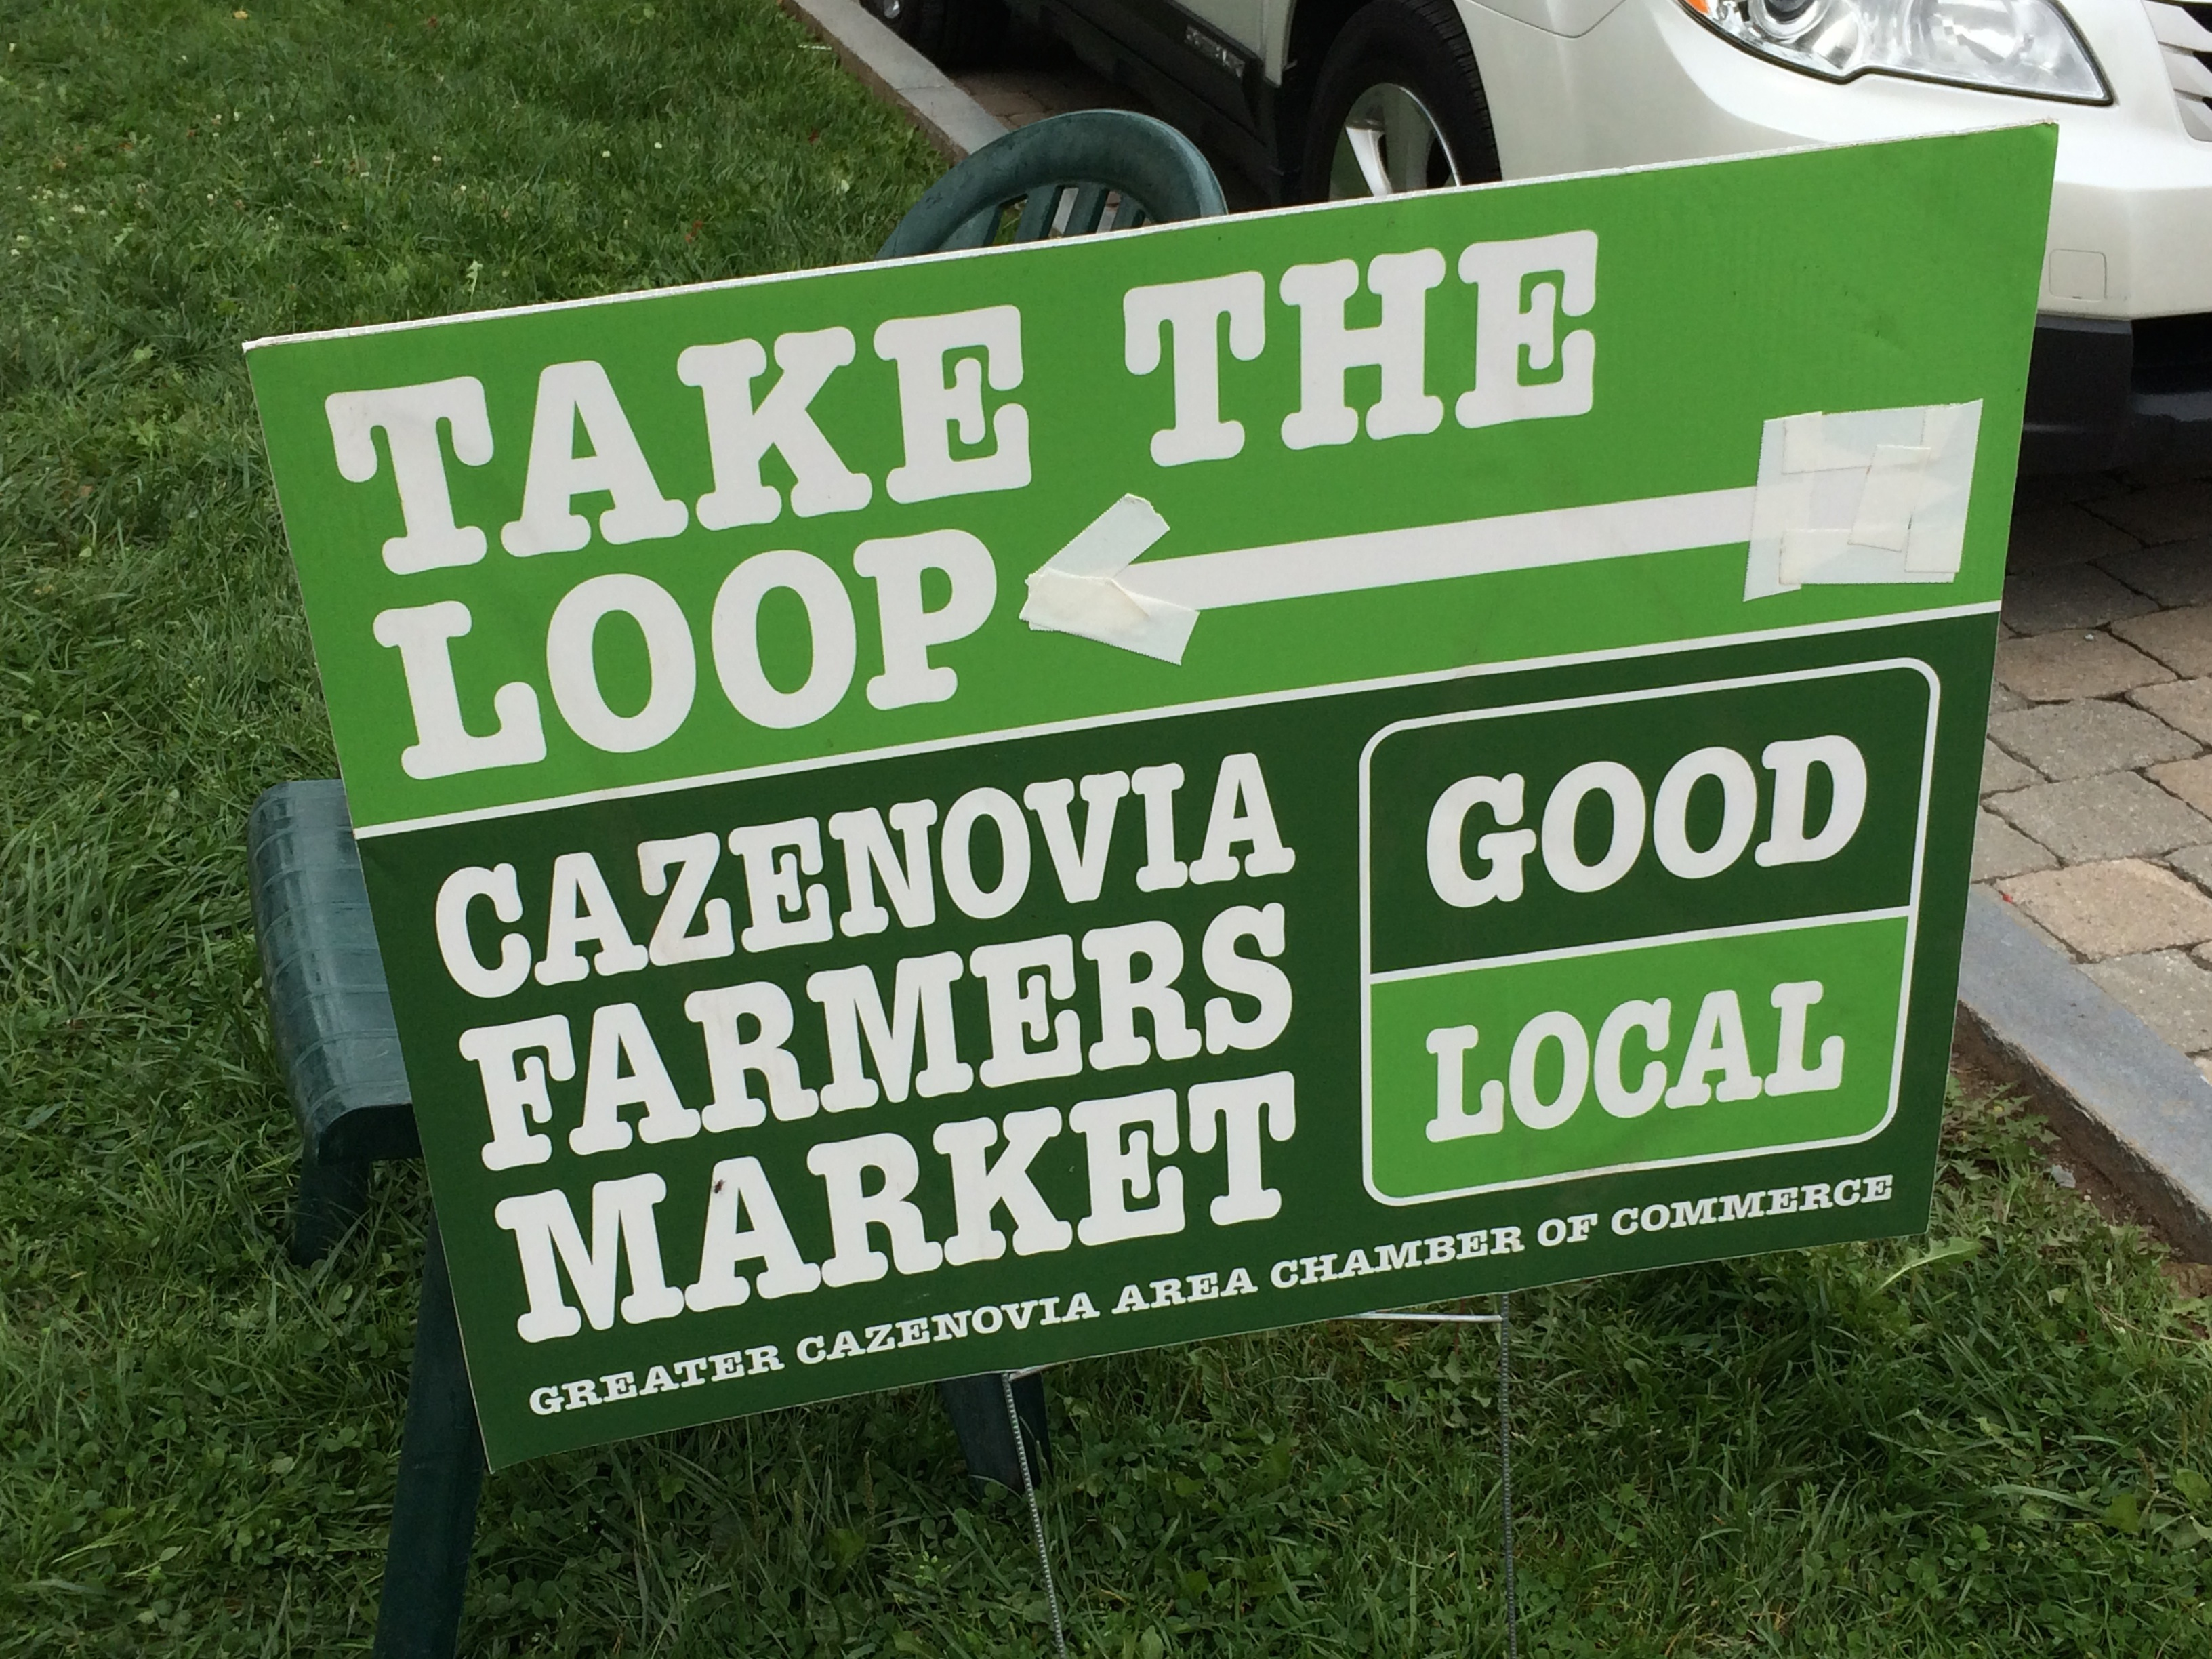 Visiting The Cazenovia Farmers Market